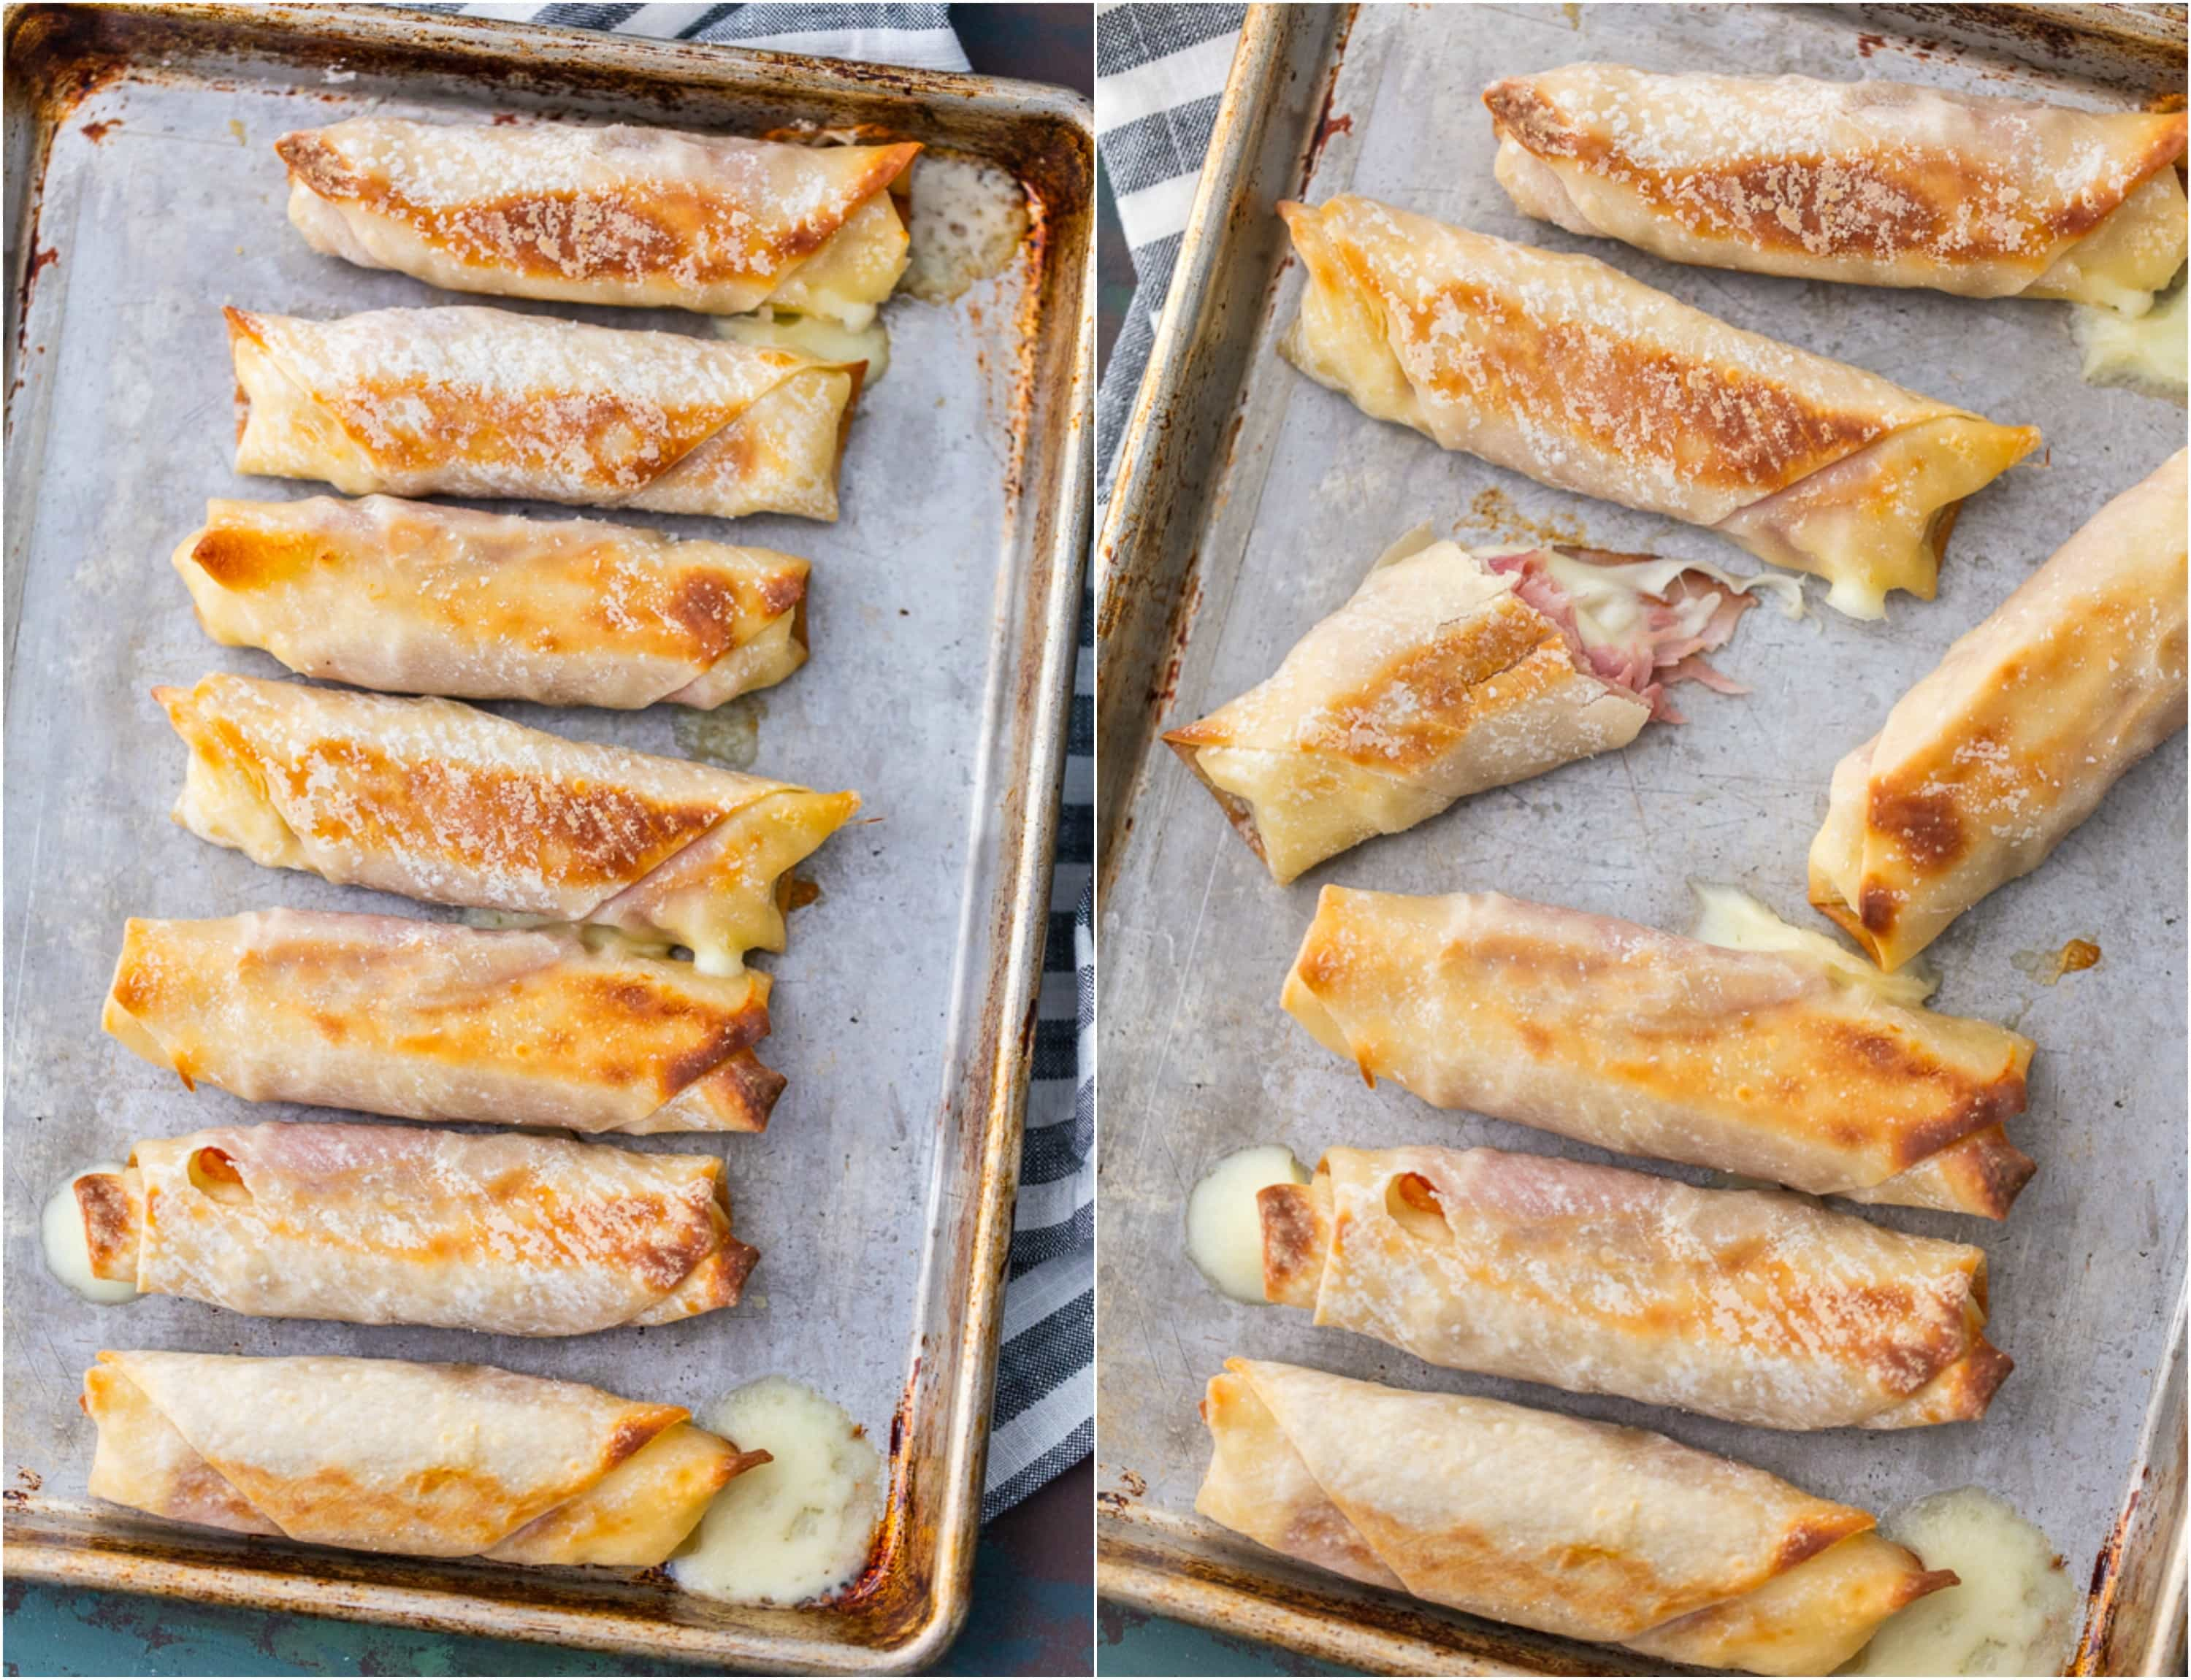 Baked Ham & Mozzarella Cheese Sticks arranged on baking trays